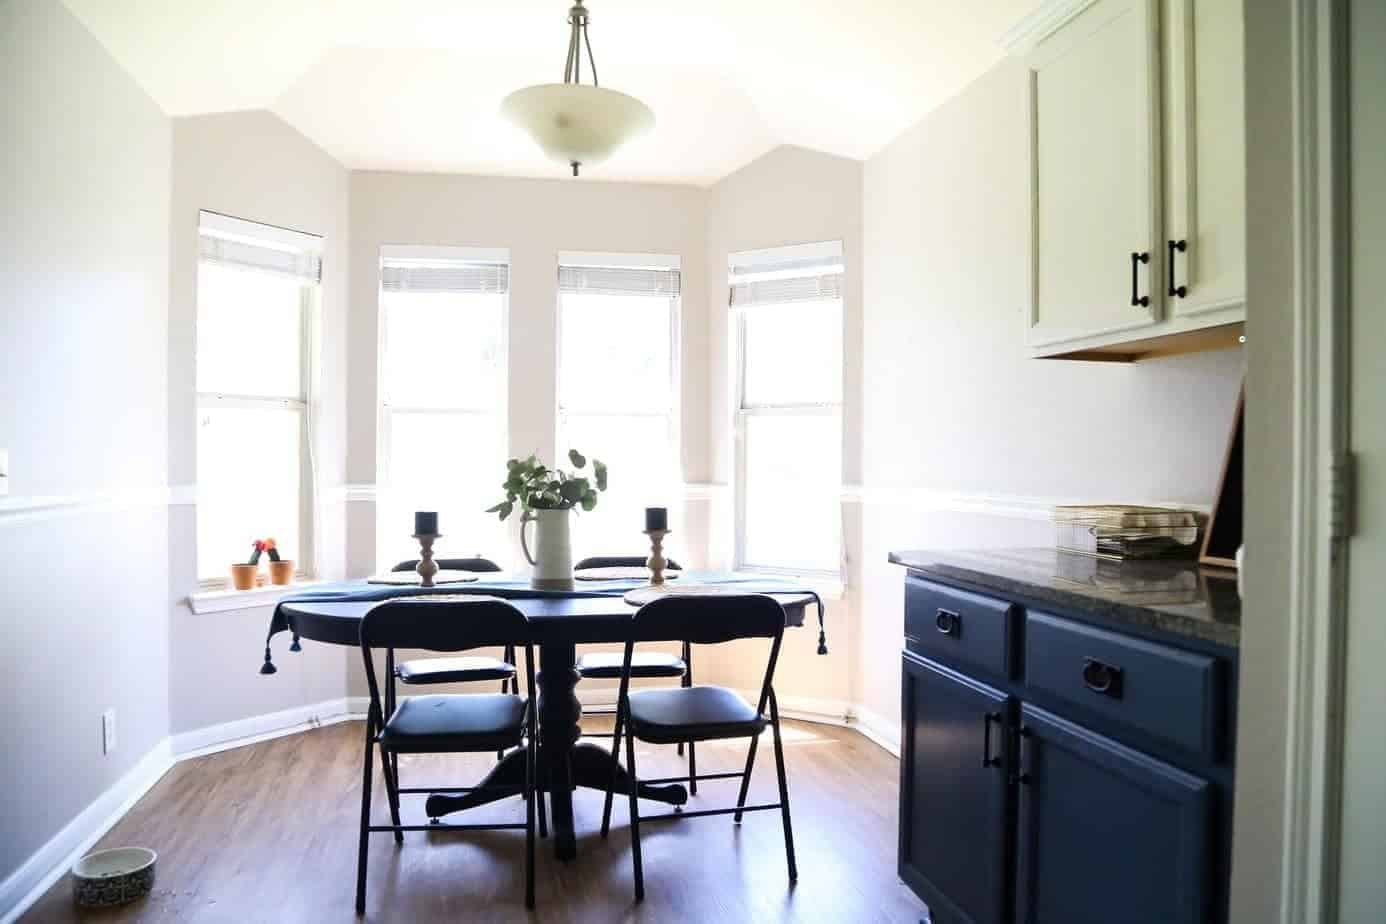 Dining room with bay windows, but lacking character before a DIY home renovation